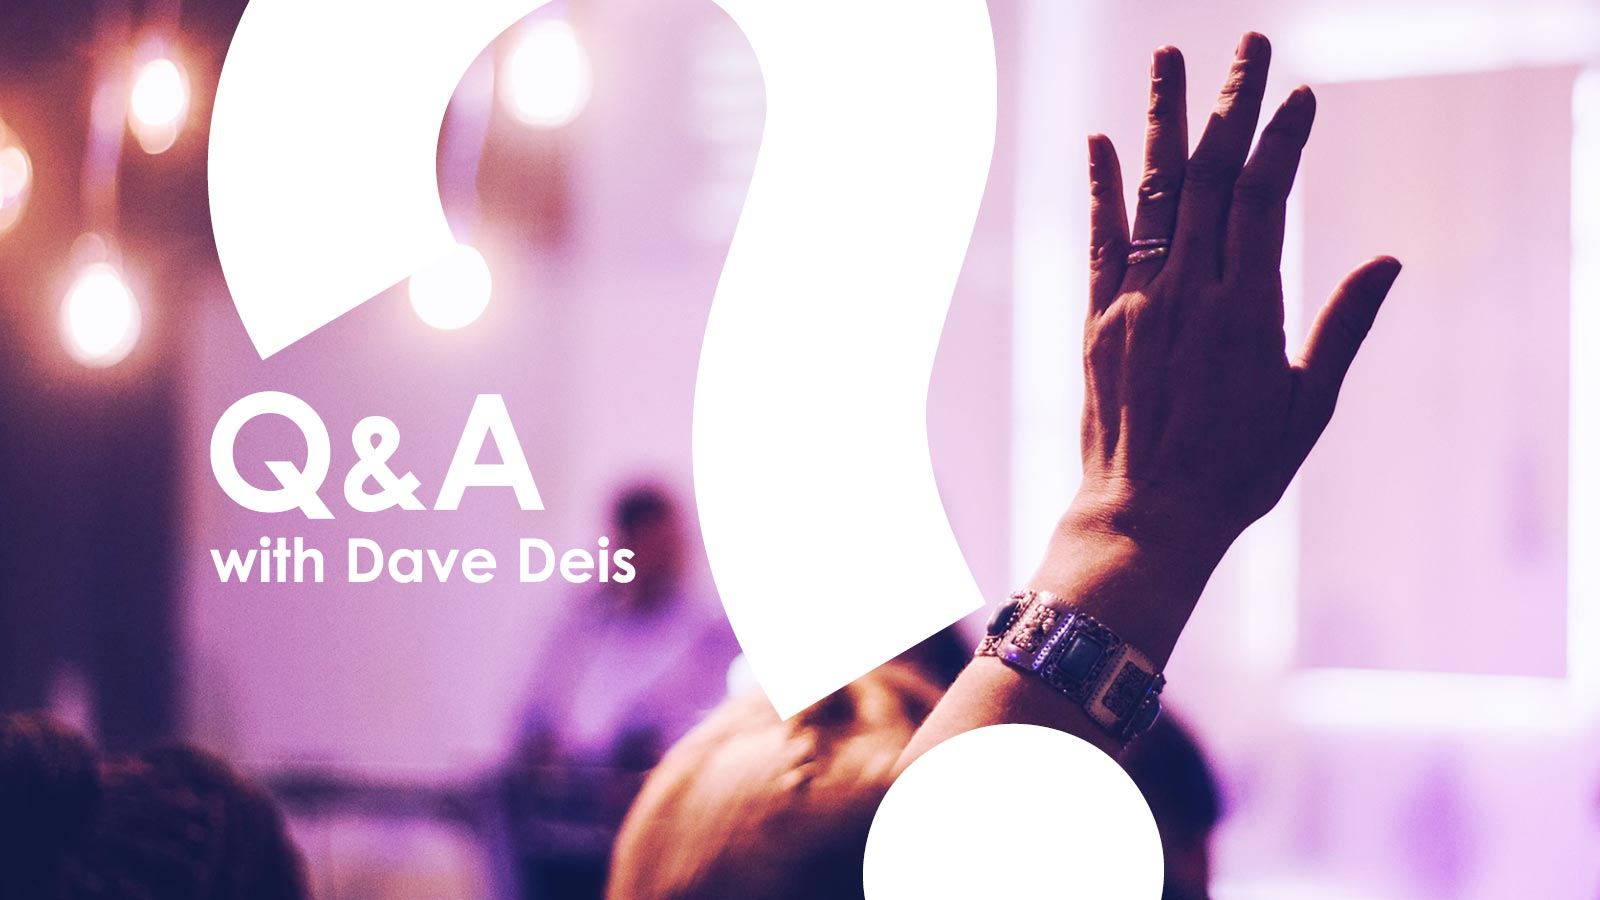 Q & A with Dave Deis